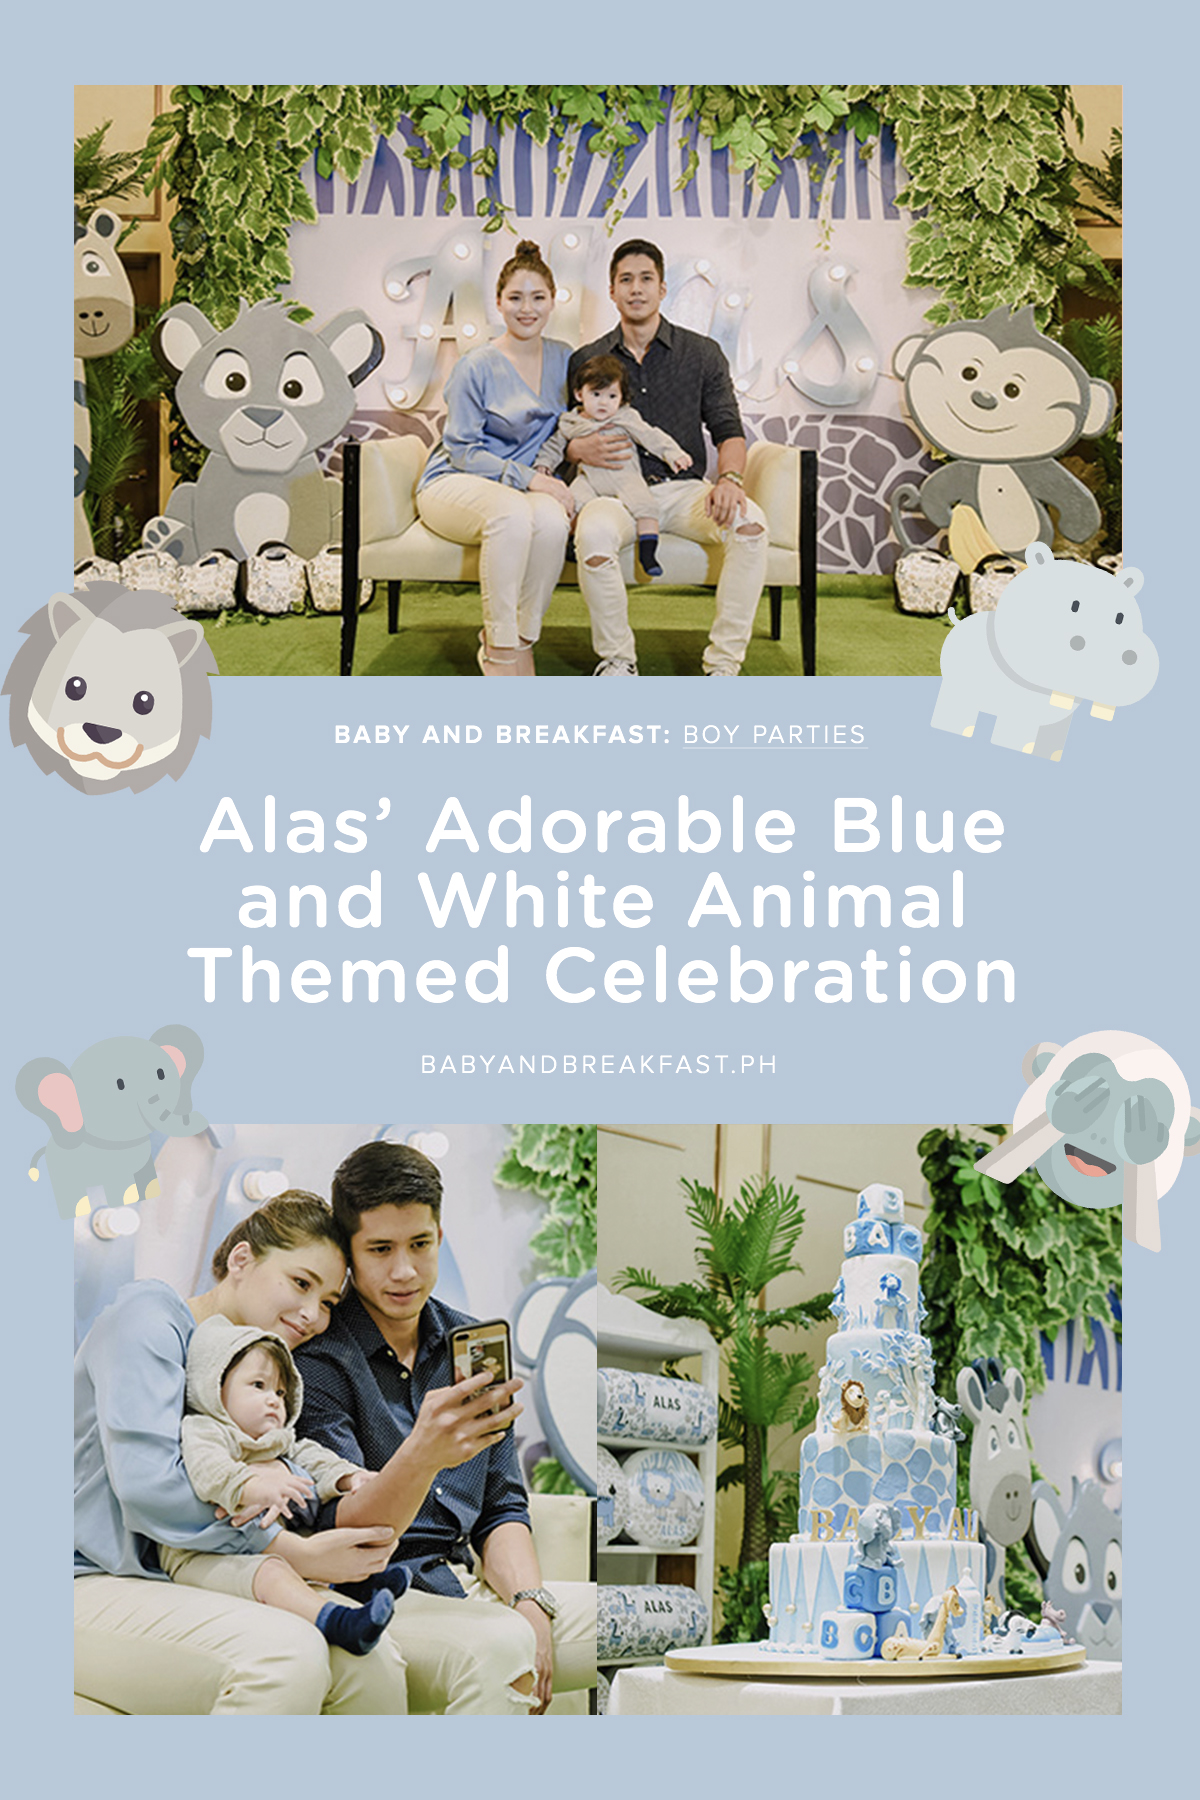 Baby and Breakfast: Boy Parties Alas' Adorable Blue and White Animal Themed Celebration